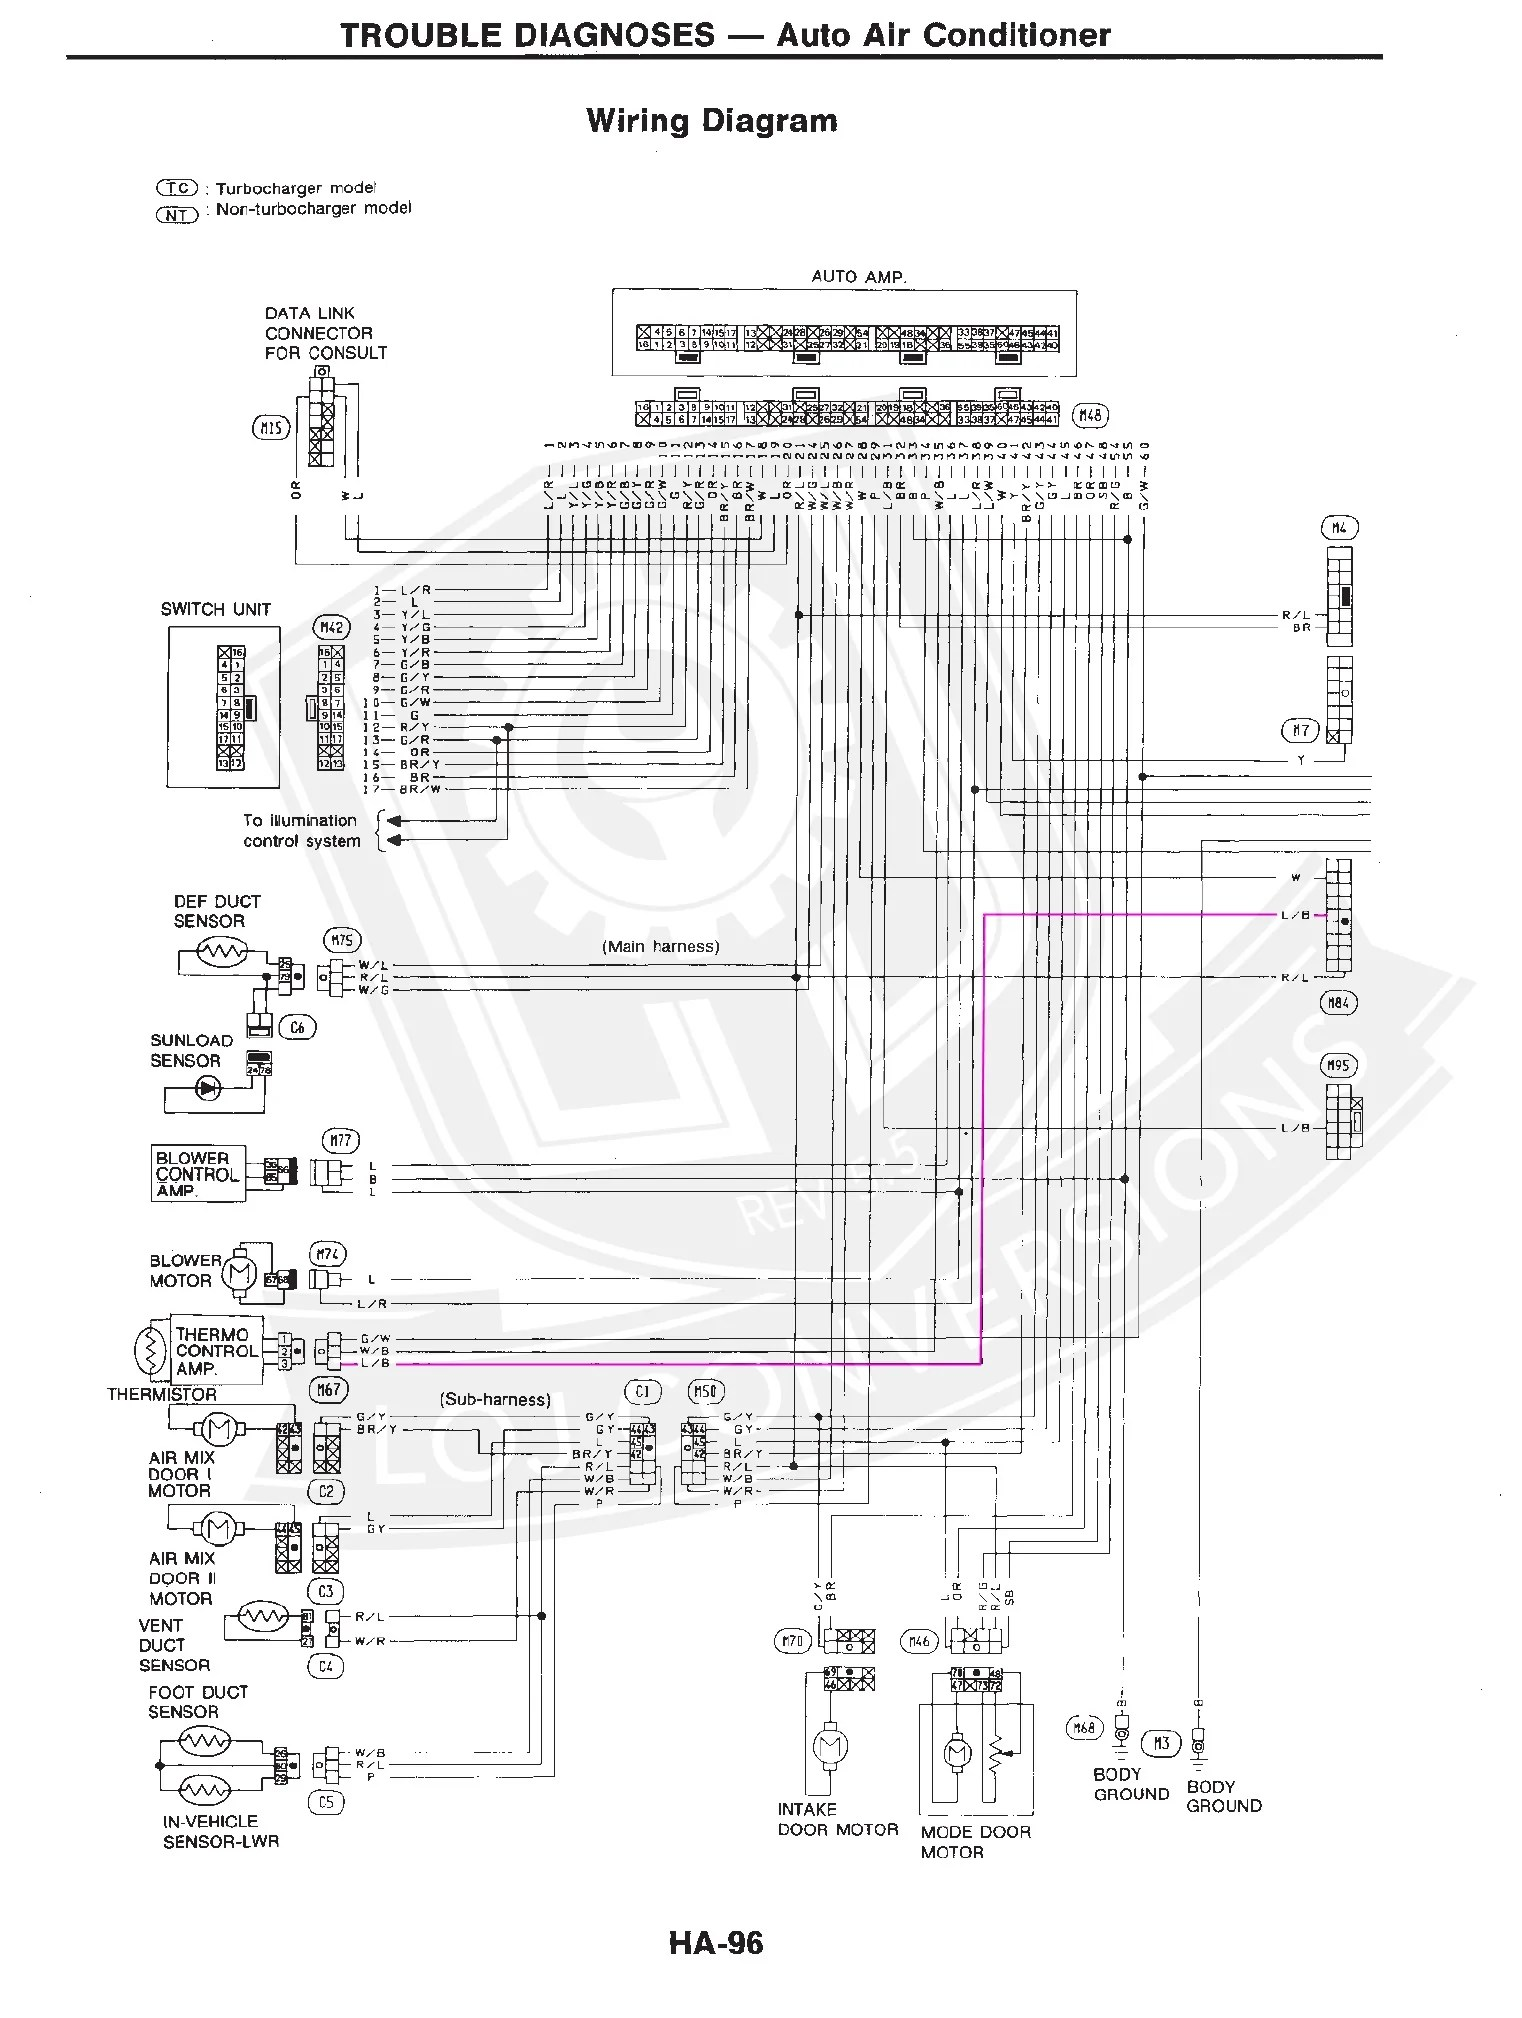 diagram likewise 1990 nissan 300zx wiring harness diagram also 1991 wiring diagram also 1990 nissan 300zx engine wiring harness further [ 1522 x 2018 Pixel ]